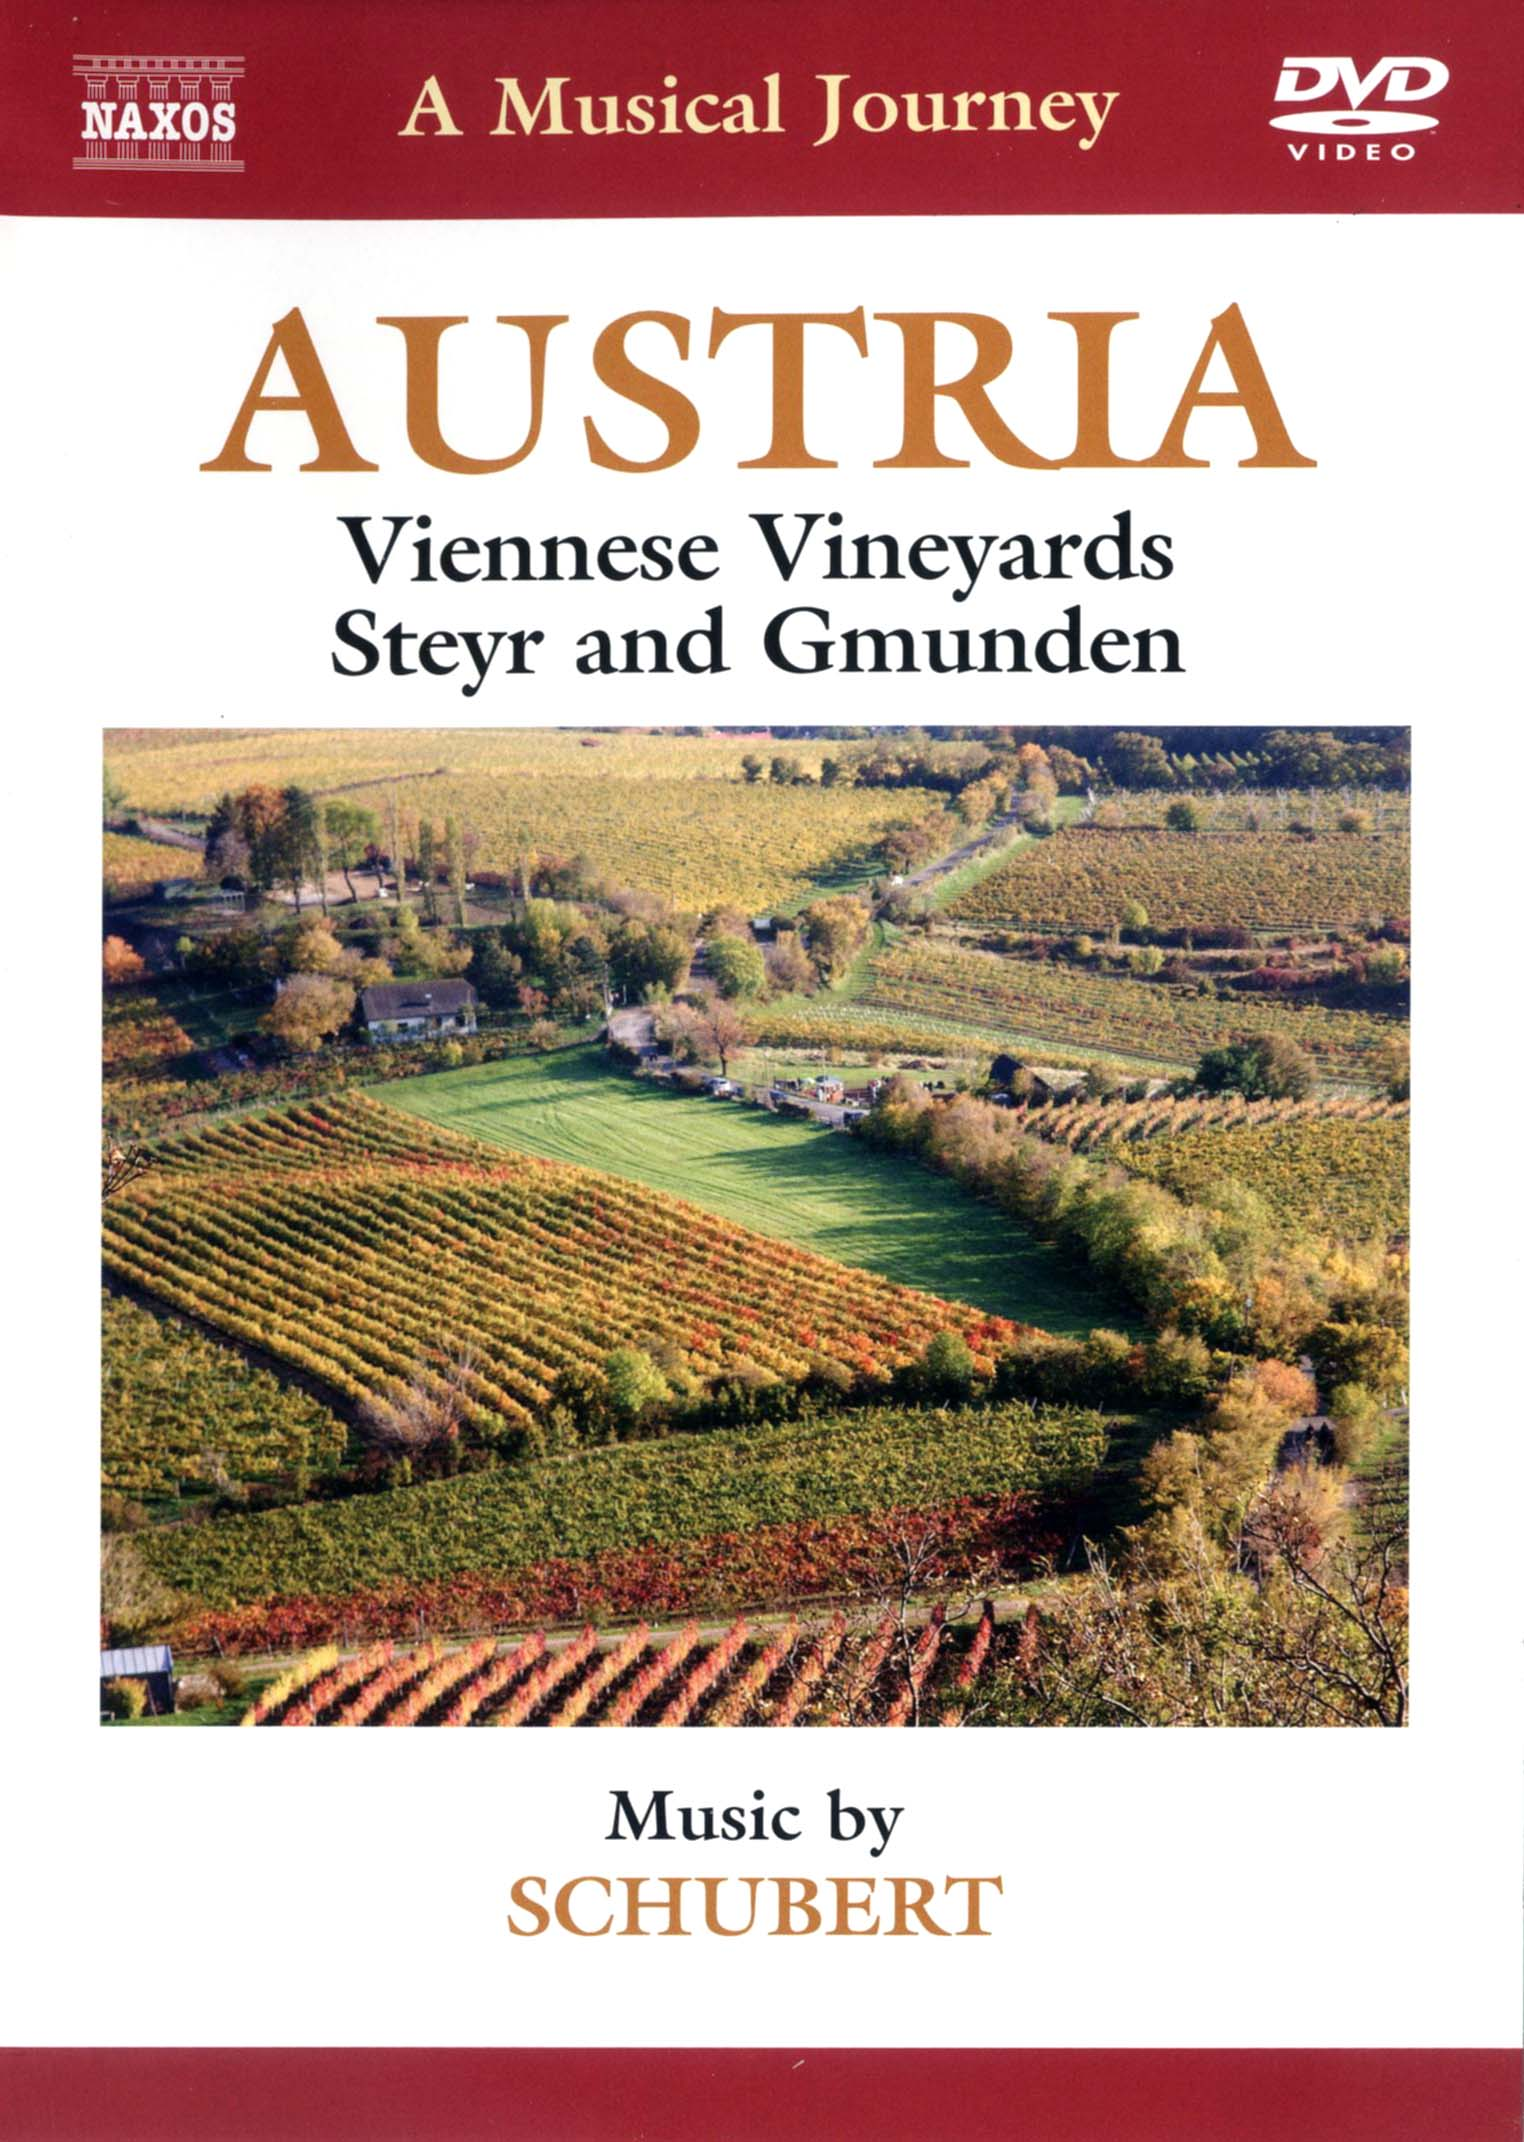 A Musical Journey: Austria - Viennese Vineyards, Steyr and Gmunden